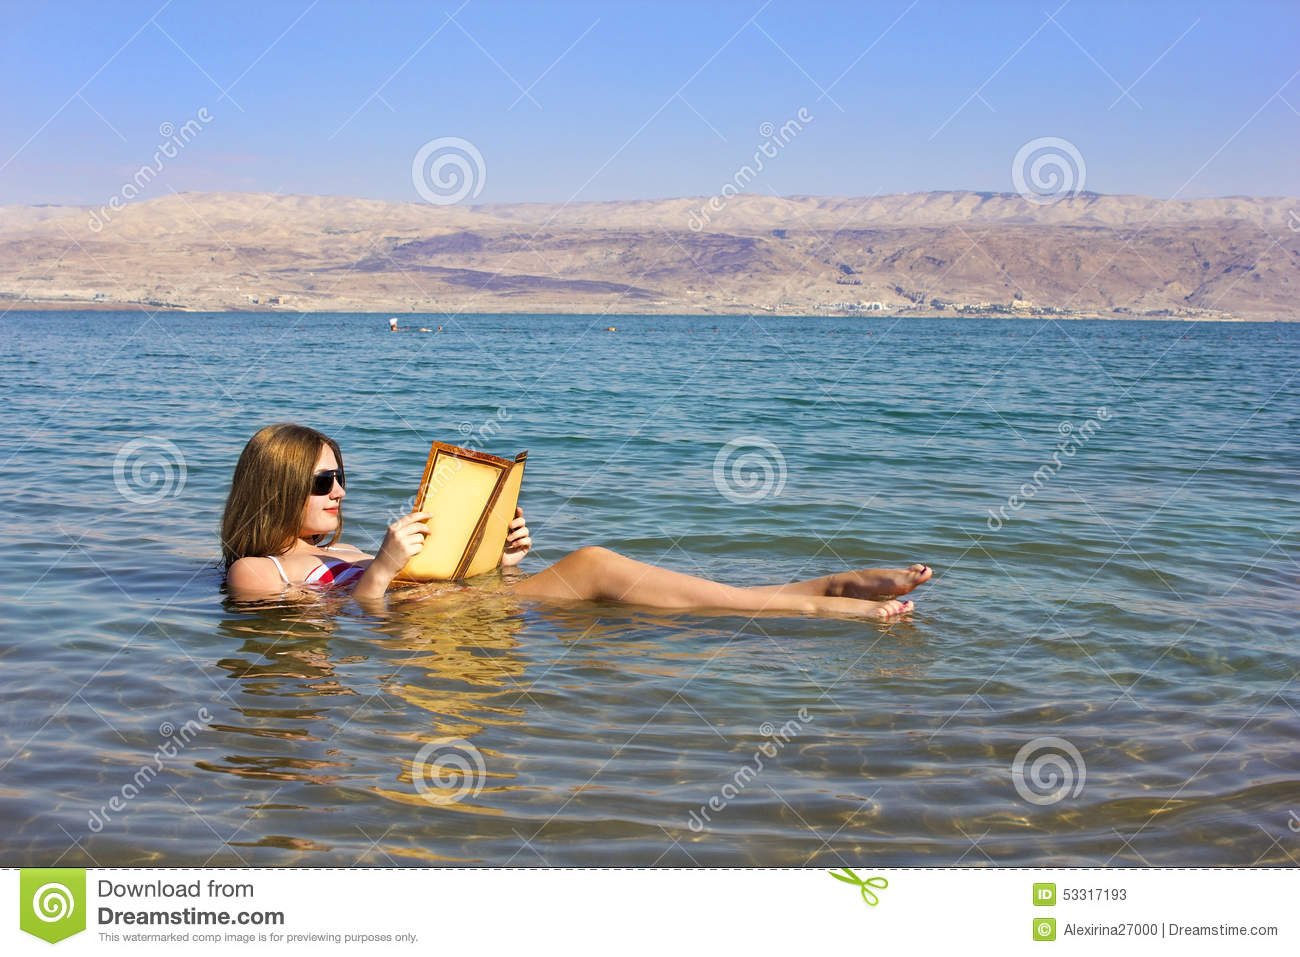 Young girl reads a book floating in the Dead Sea in Israel